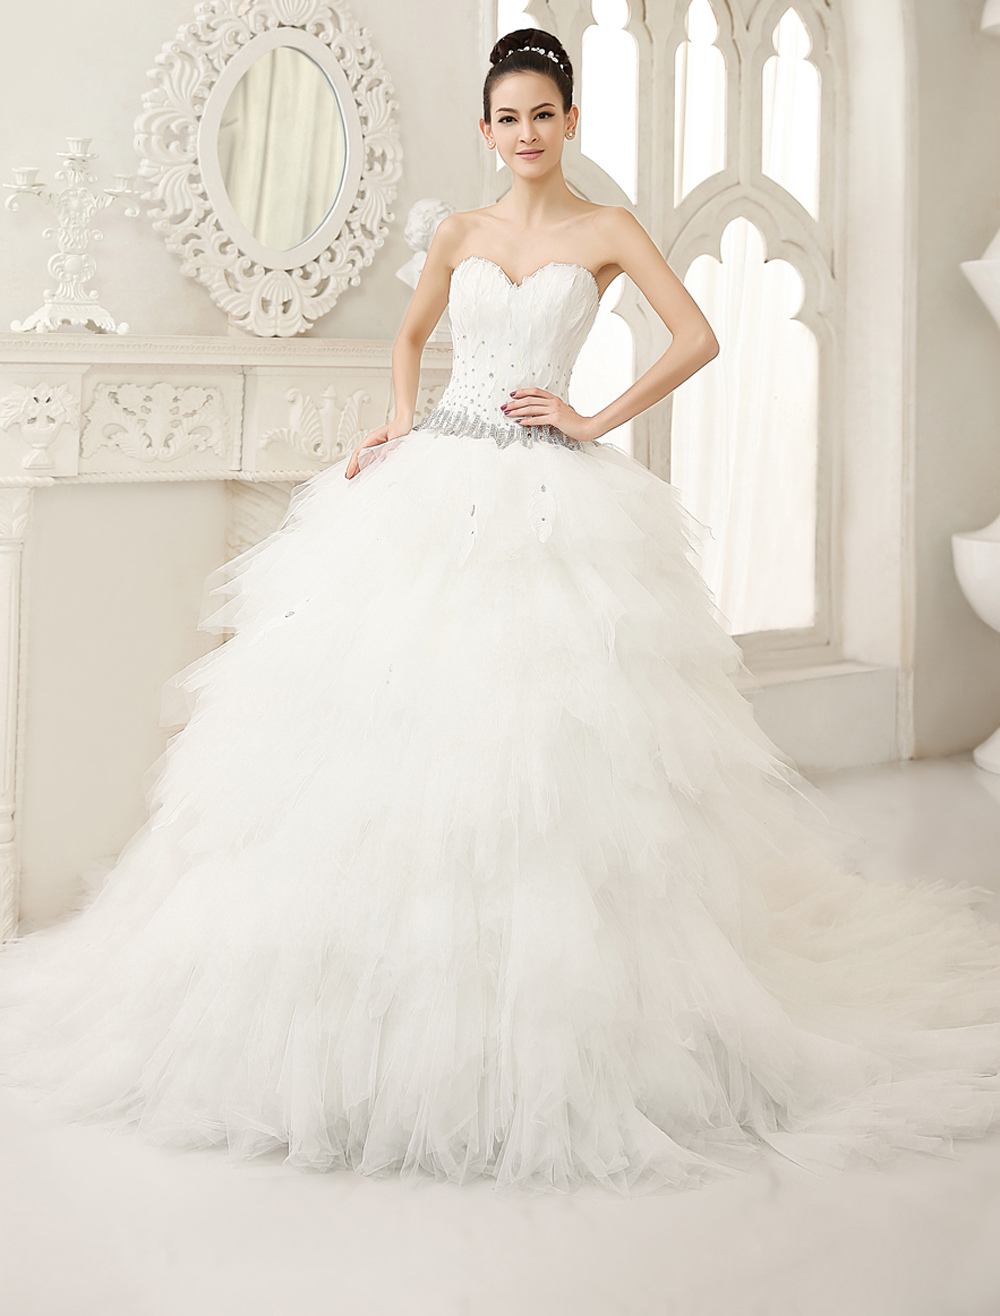 Buy Ivory A-line Sweetheart Neck Tiered Cathedral Train Wedding Dress For Bride Milanoo for $299.99 in Milanoo store